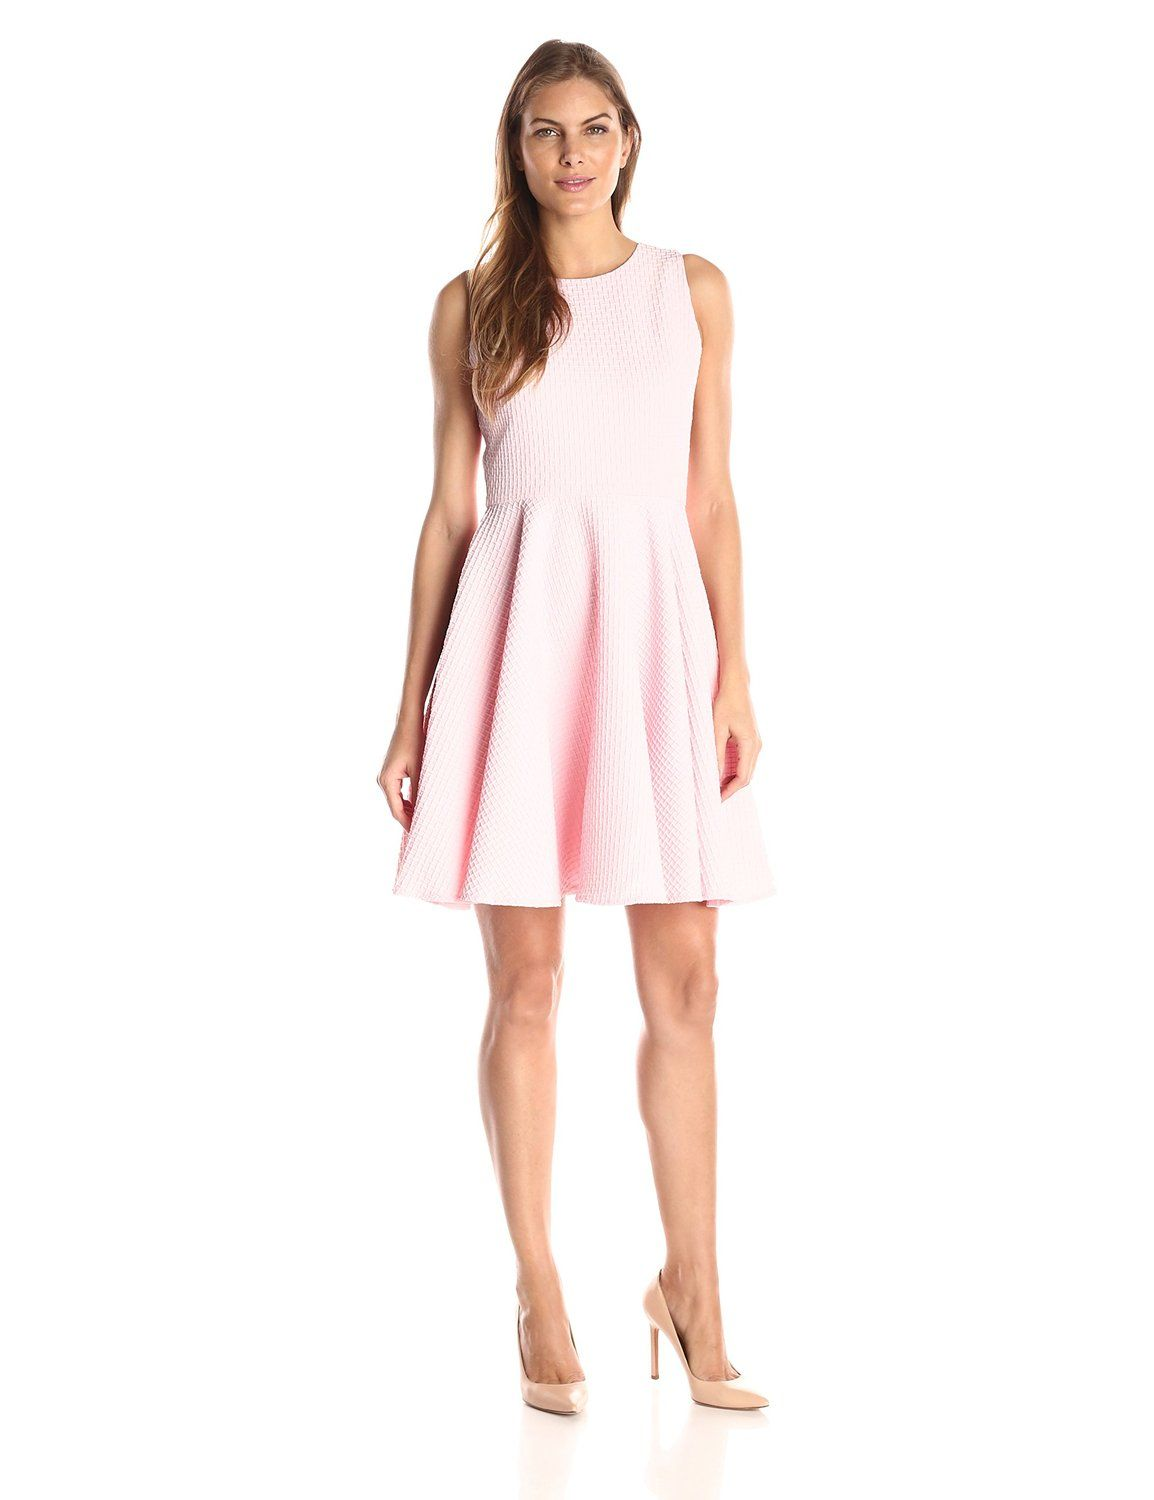 193f7a301fdac Gabby Skye Women s Solid Jacquard Fit and Flare Dress at Amazon Women s  Clothing store